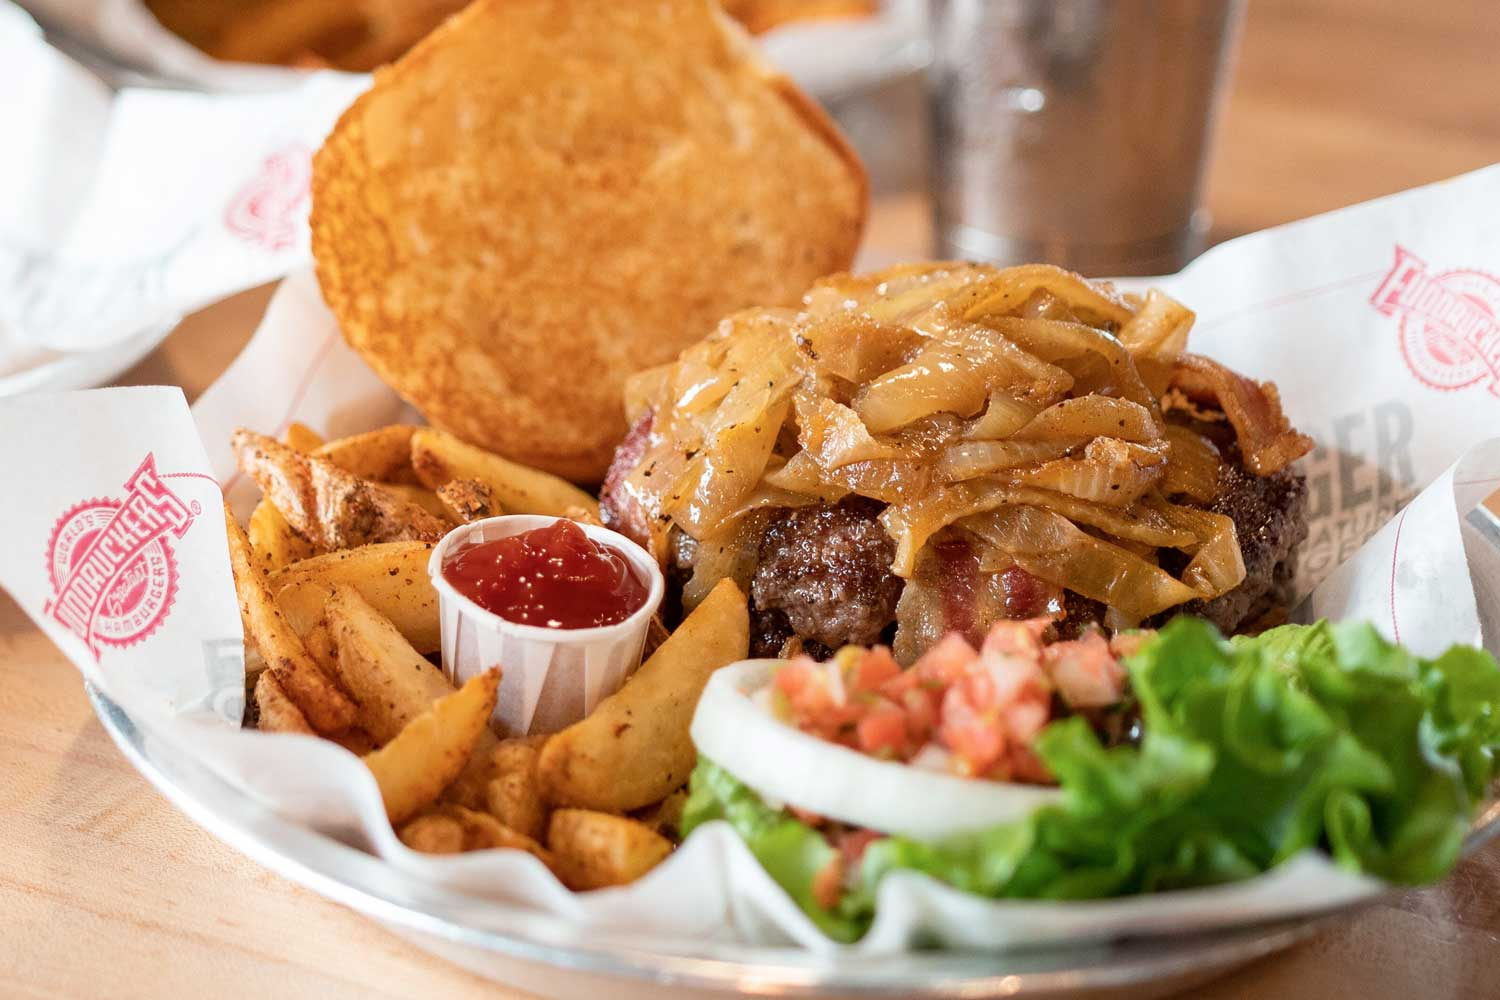 Specialty Burger Image